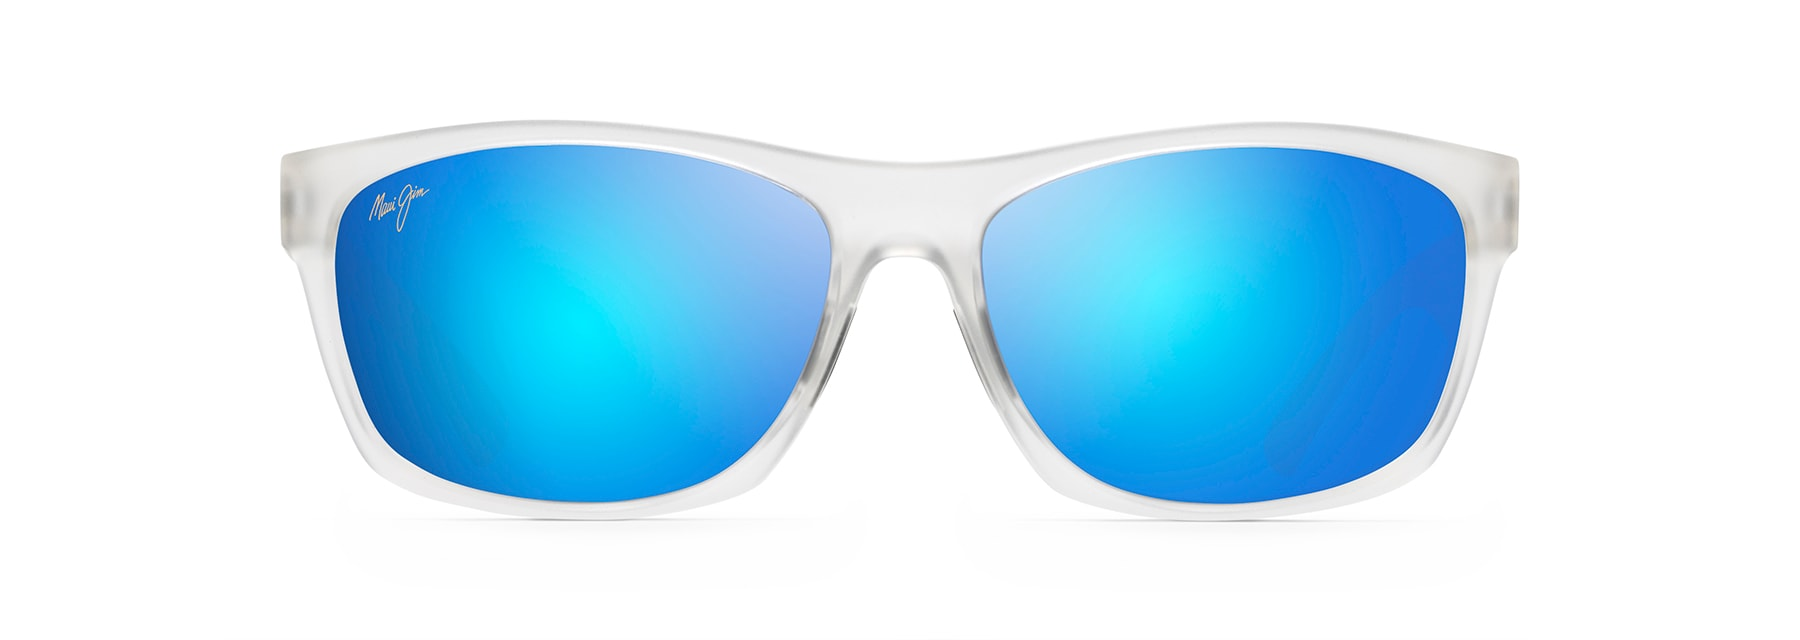 81f5320fcc5af Tumbleland Polarised Sunglasses